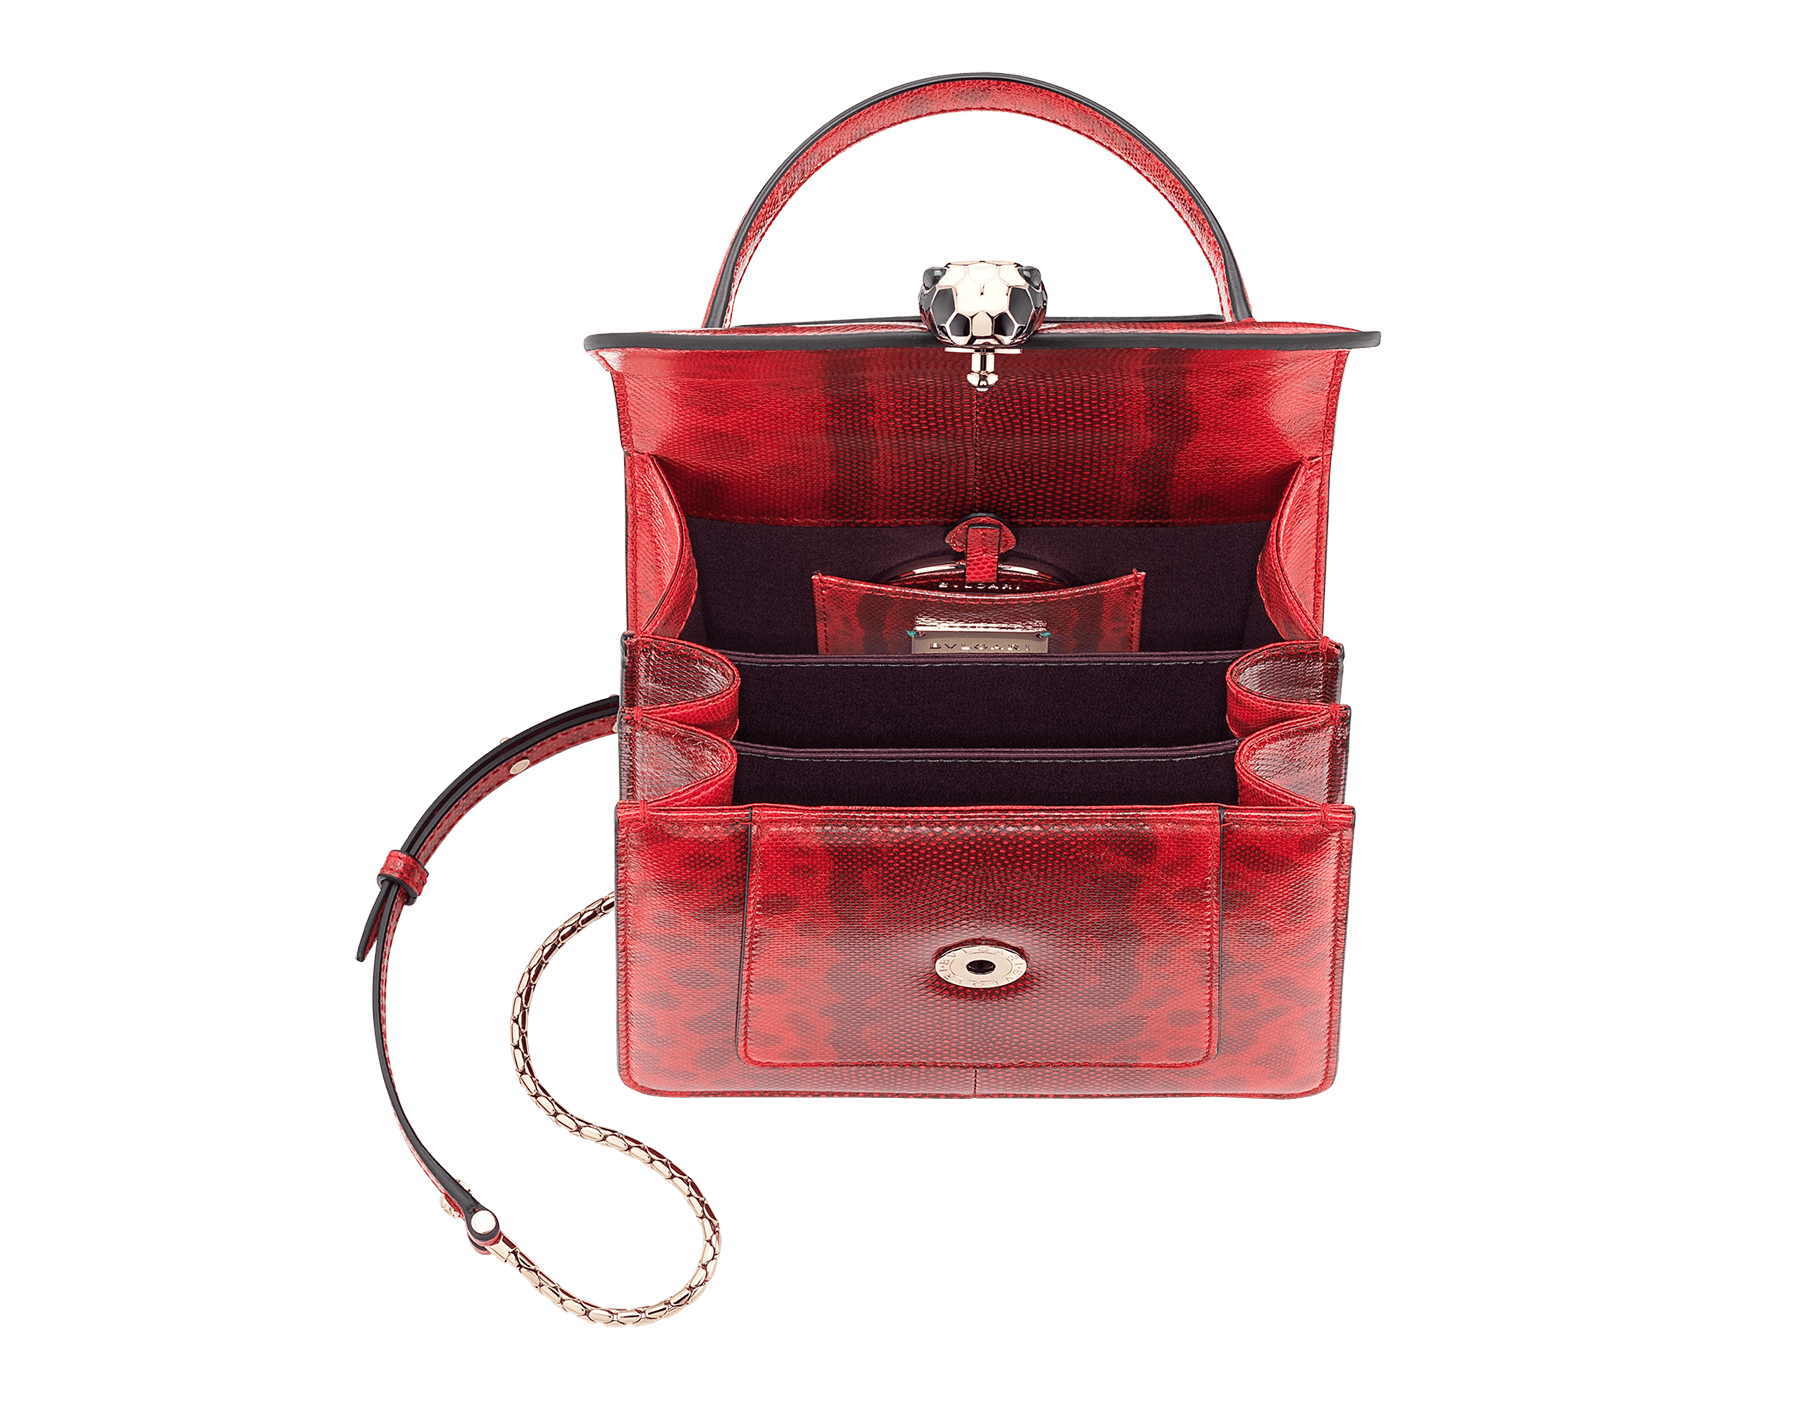 Serpenti Forever crossbody bag in sea star coral shiny karung skin. Snakehead closure in light gold plated brass decorated with black and white enamel, and green malachite eyes. 287915 image 4